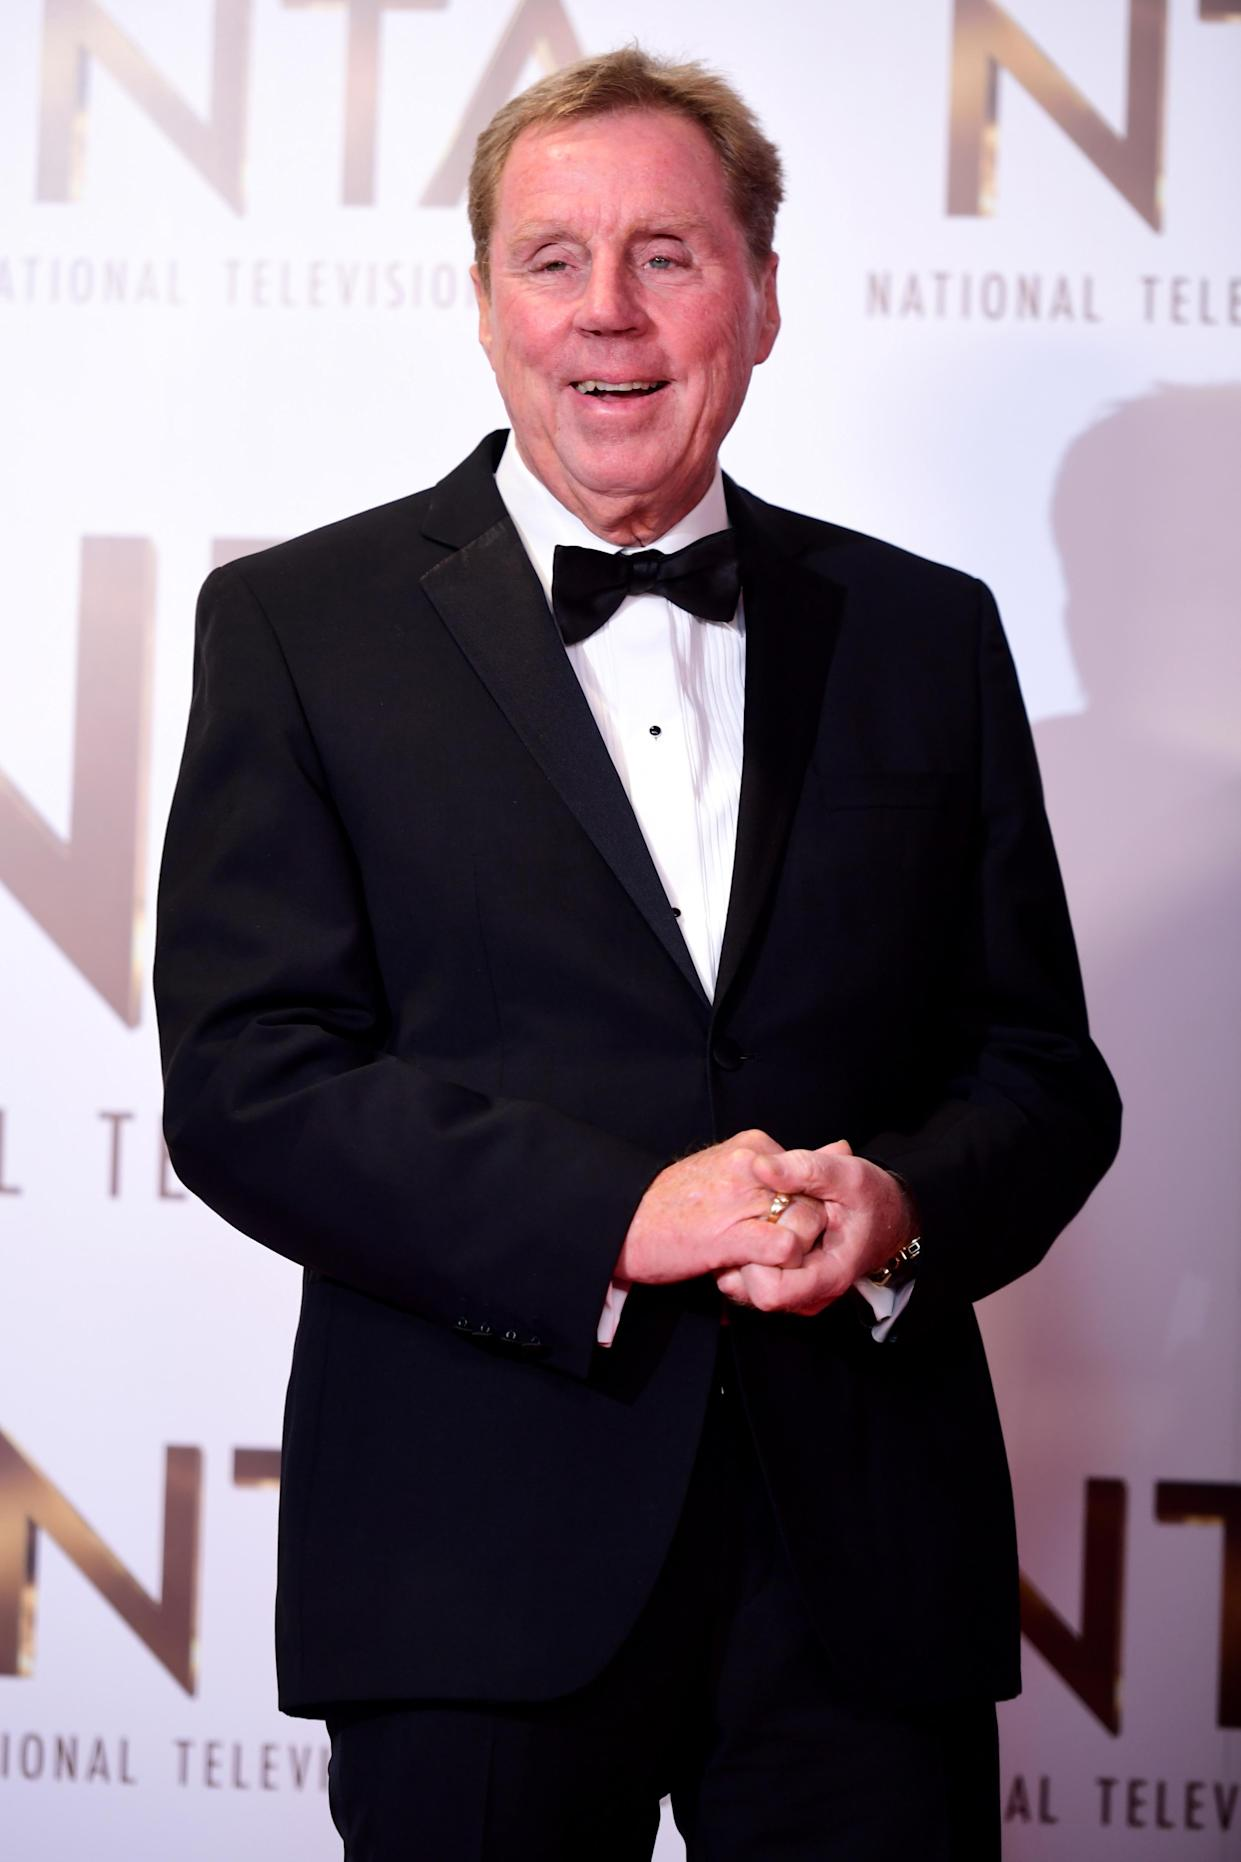 Harry Redknapp in the Press Room at the National Television Awards 2019 held at the O2 Arena, London.